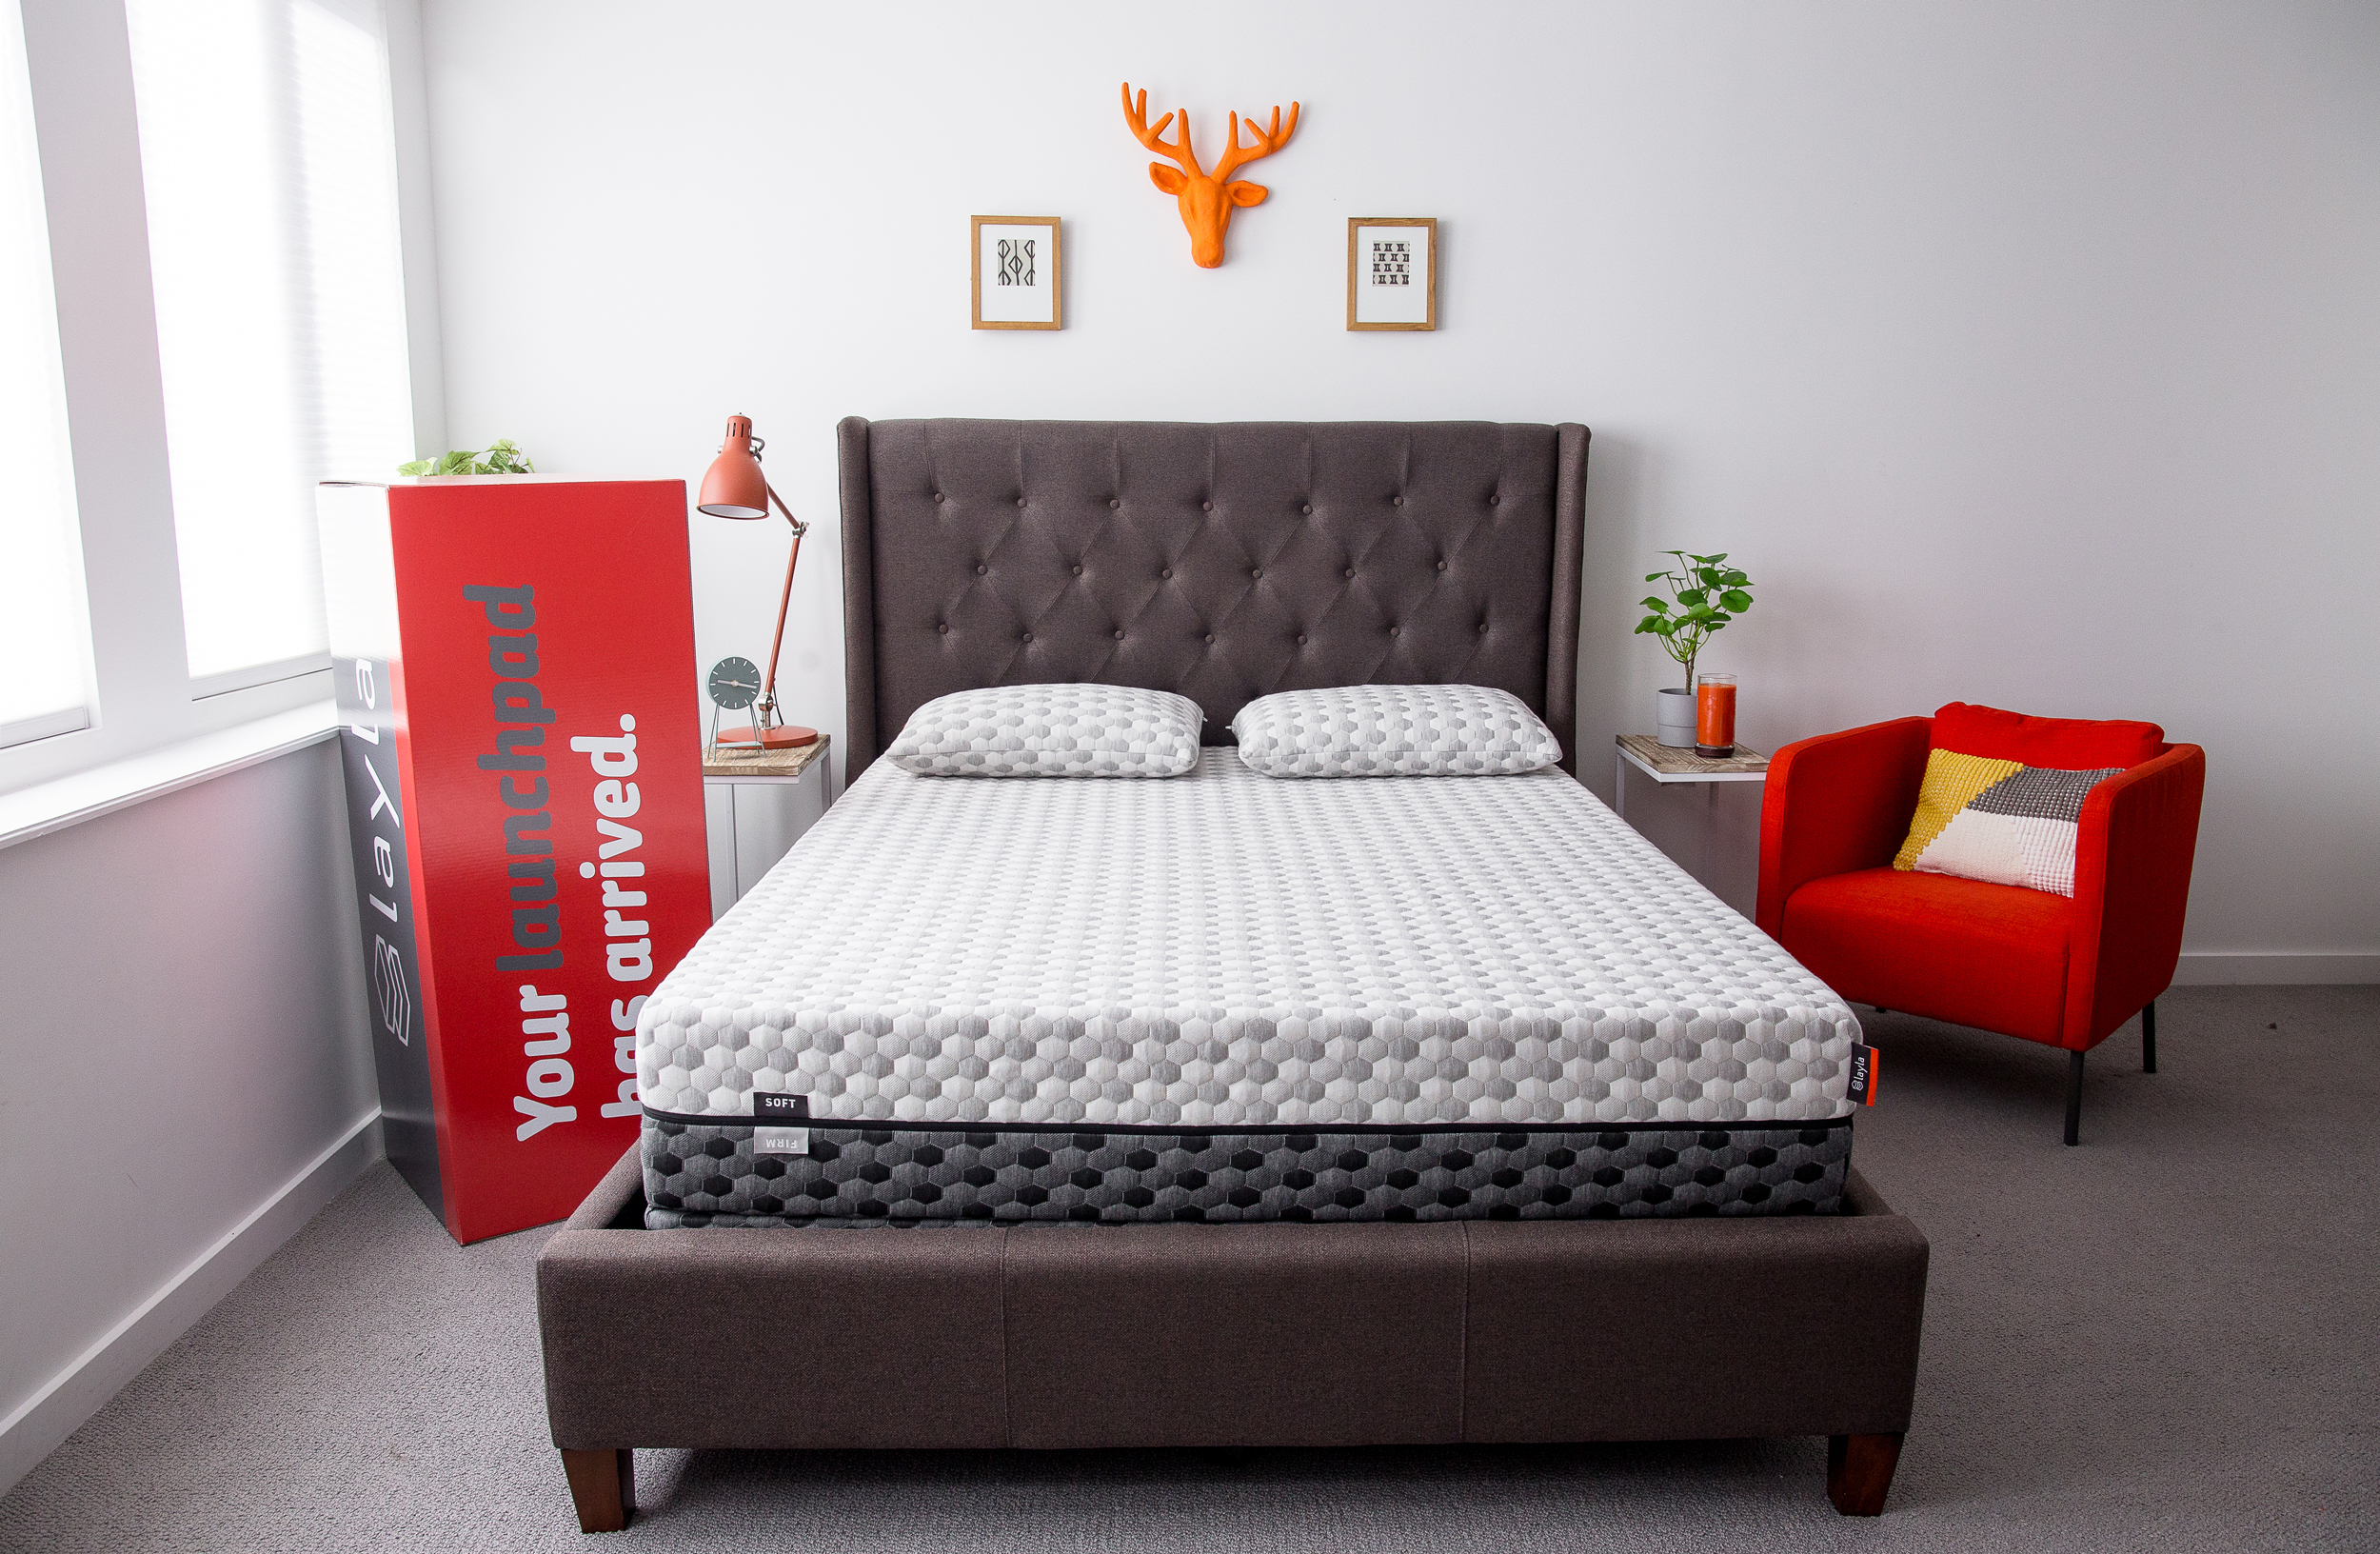 New Layla mattress in a bedroom